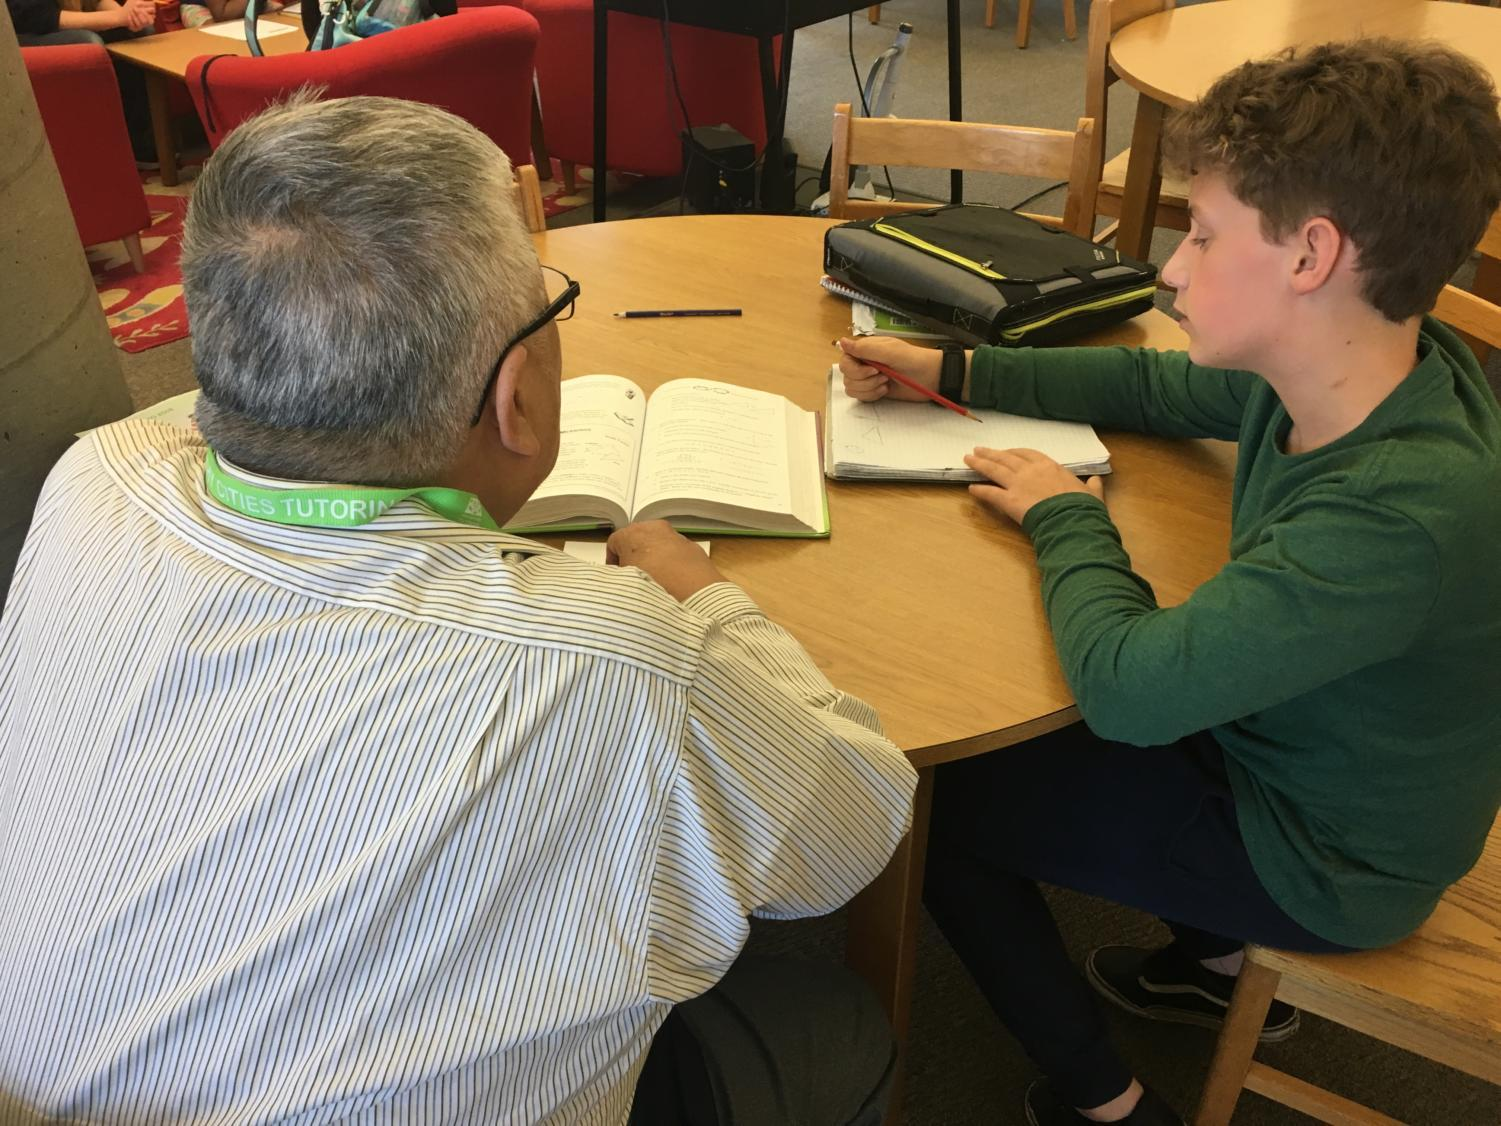 healthy cities tutoring helps kids in need – scot scoop news